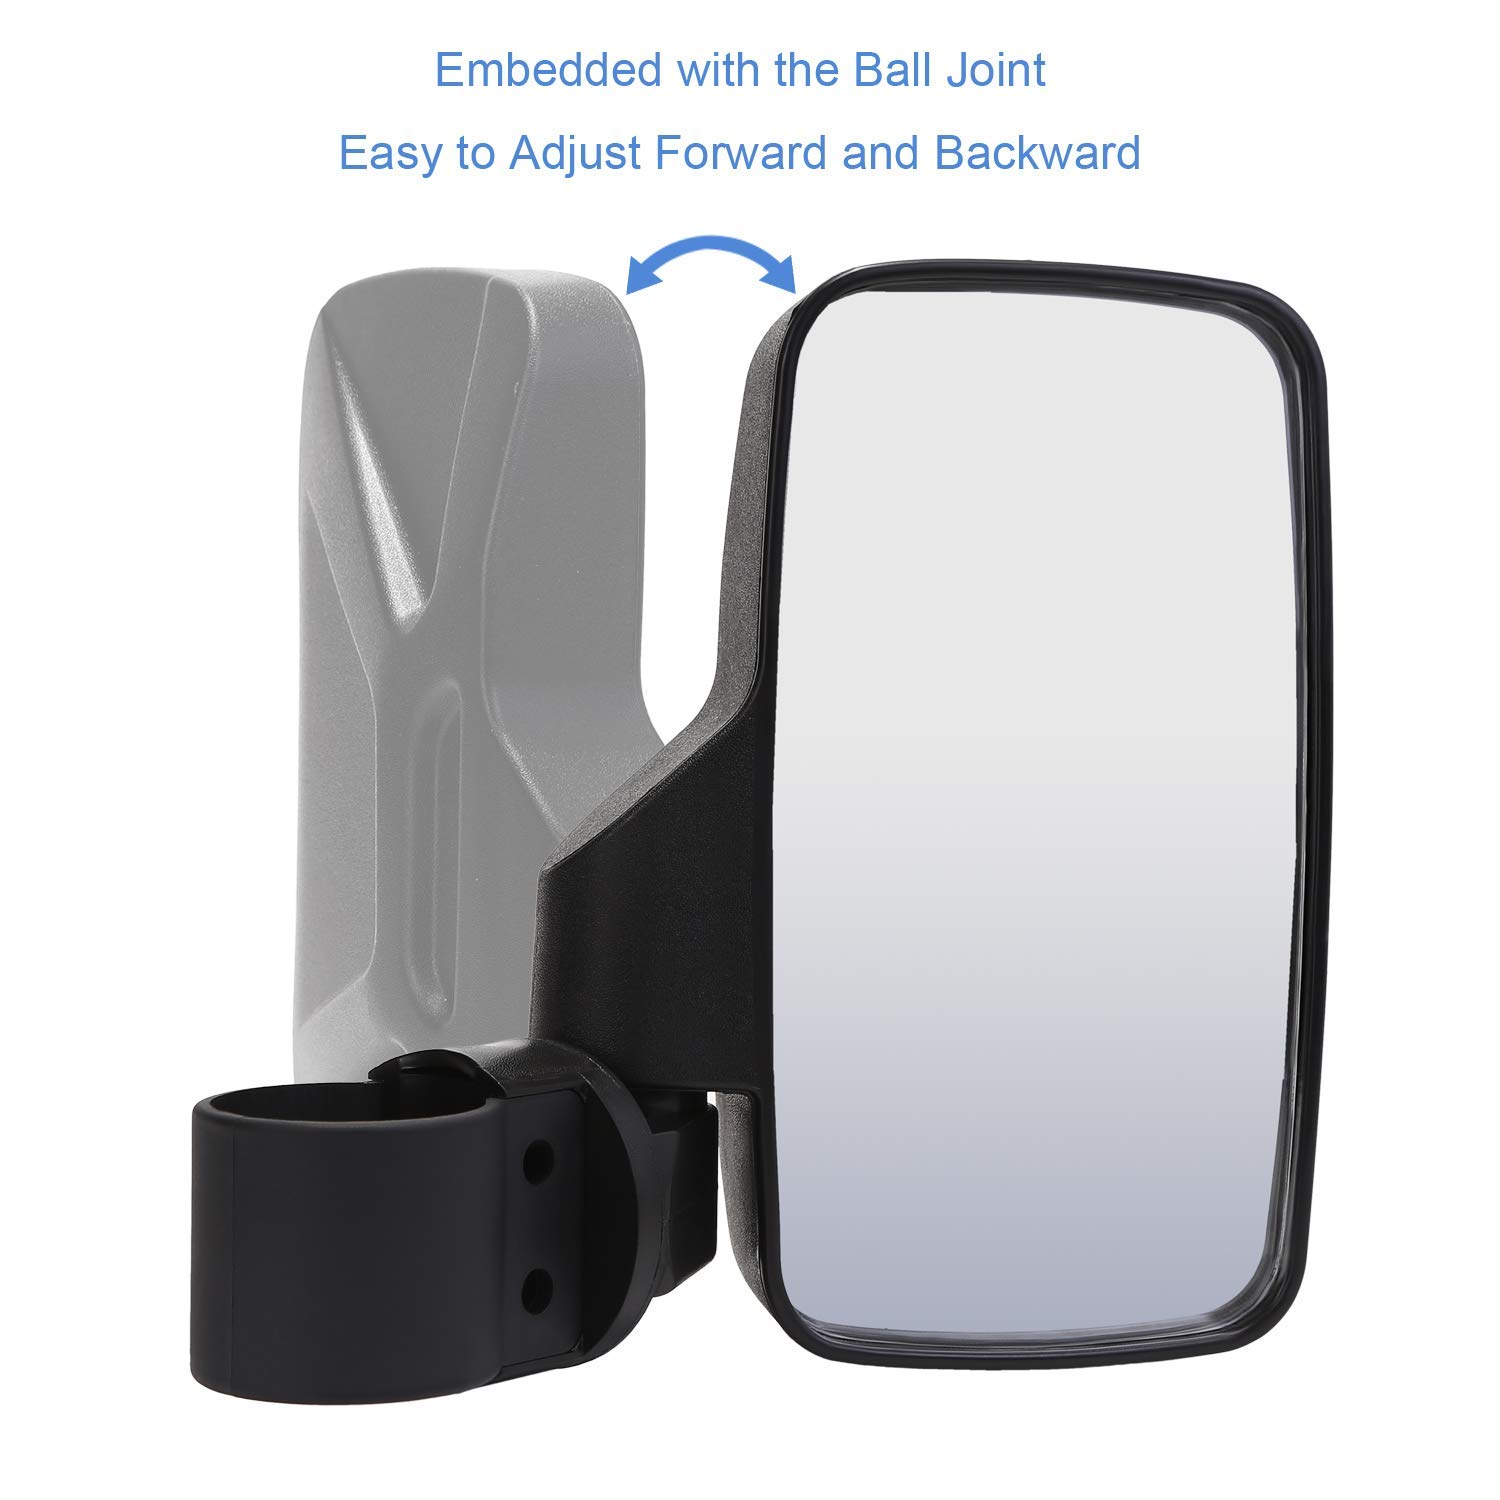 Pack of 2 Universal UTV Side View Mirrors High Impact BETOOLL Upgraded Adjustable Pair UTV Side Mirror Set 1.75 or 2inch Roll Bar Cage